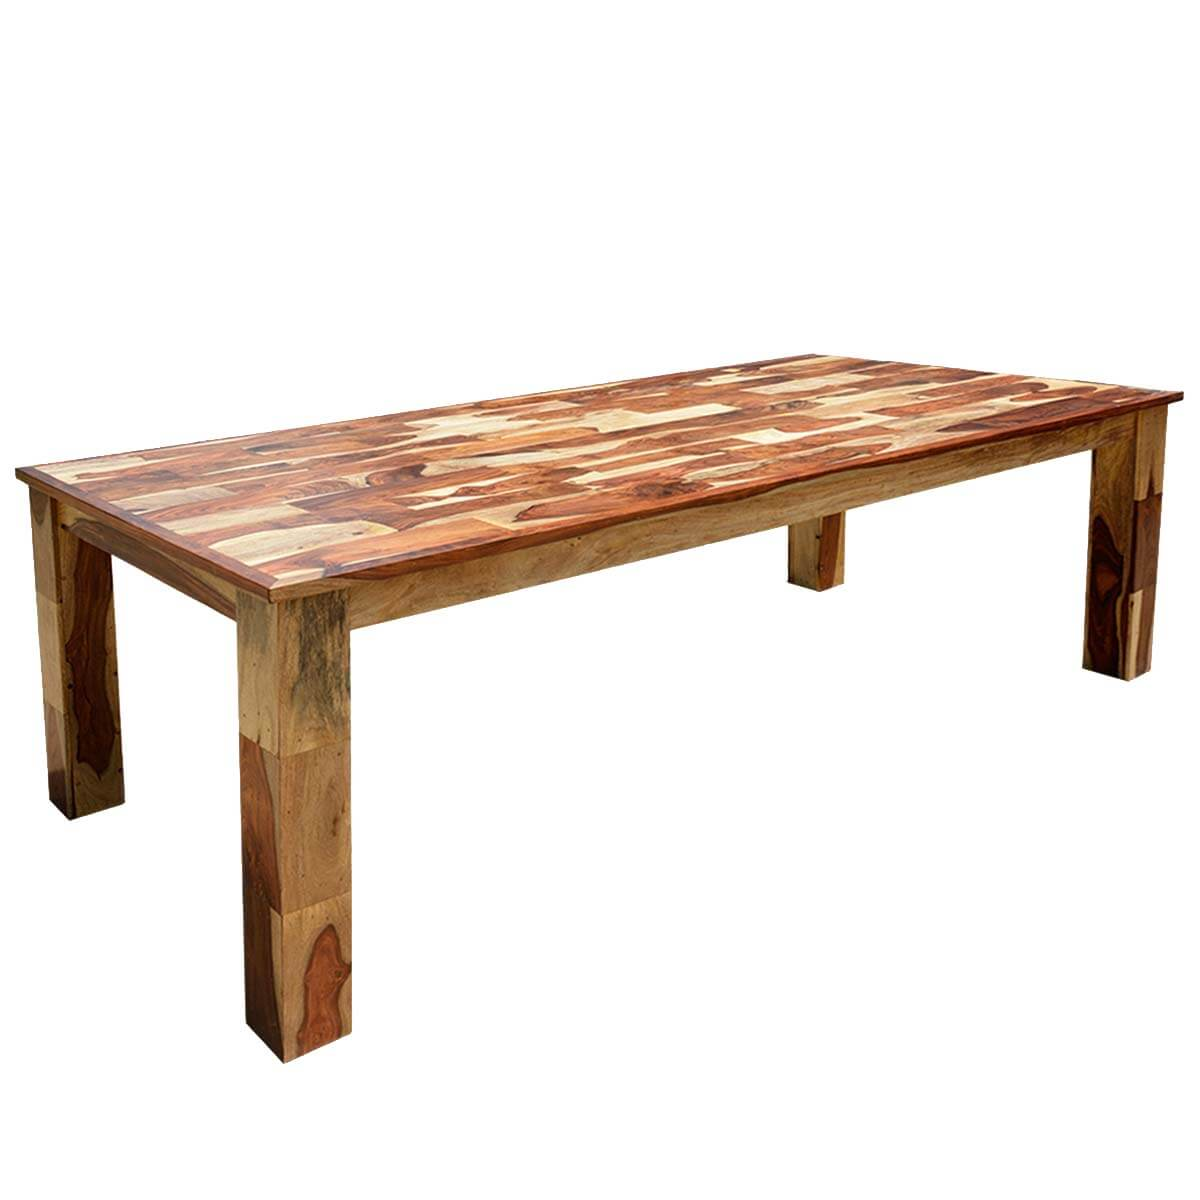 Cariboo rustic solid wood large rectangular dining table for Solid wood dining table